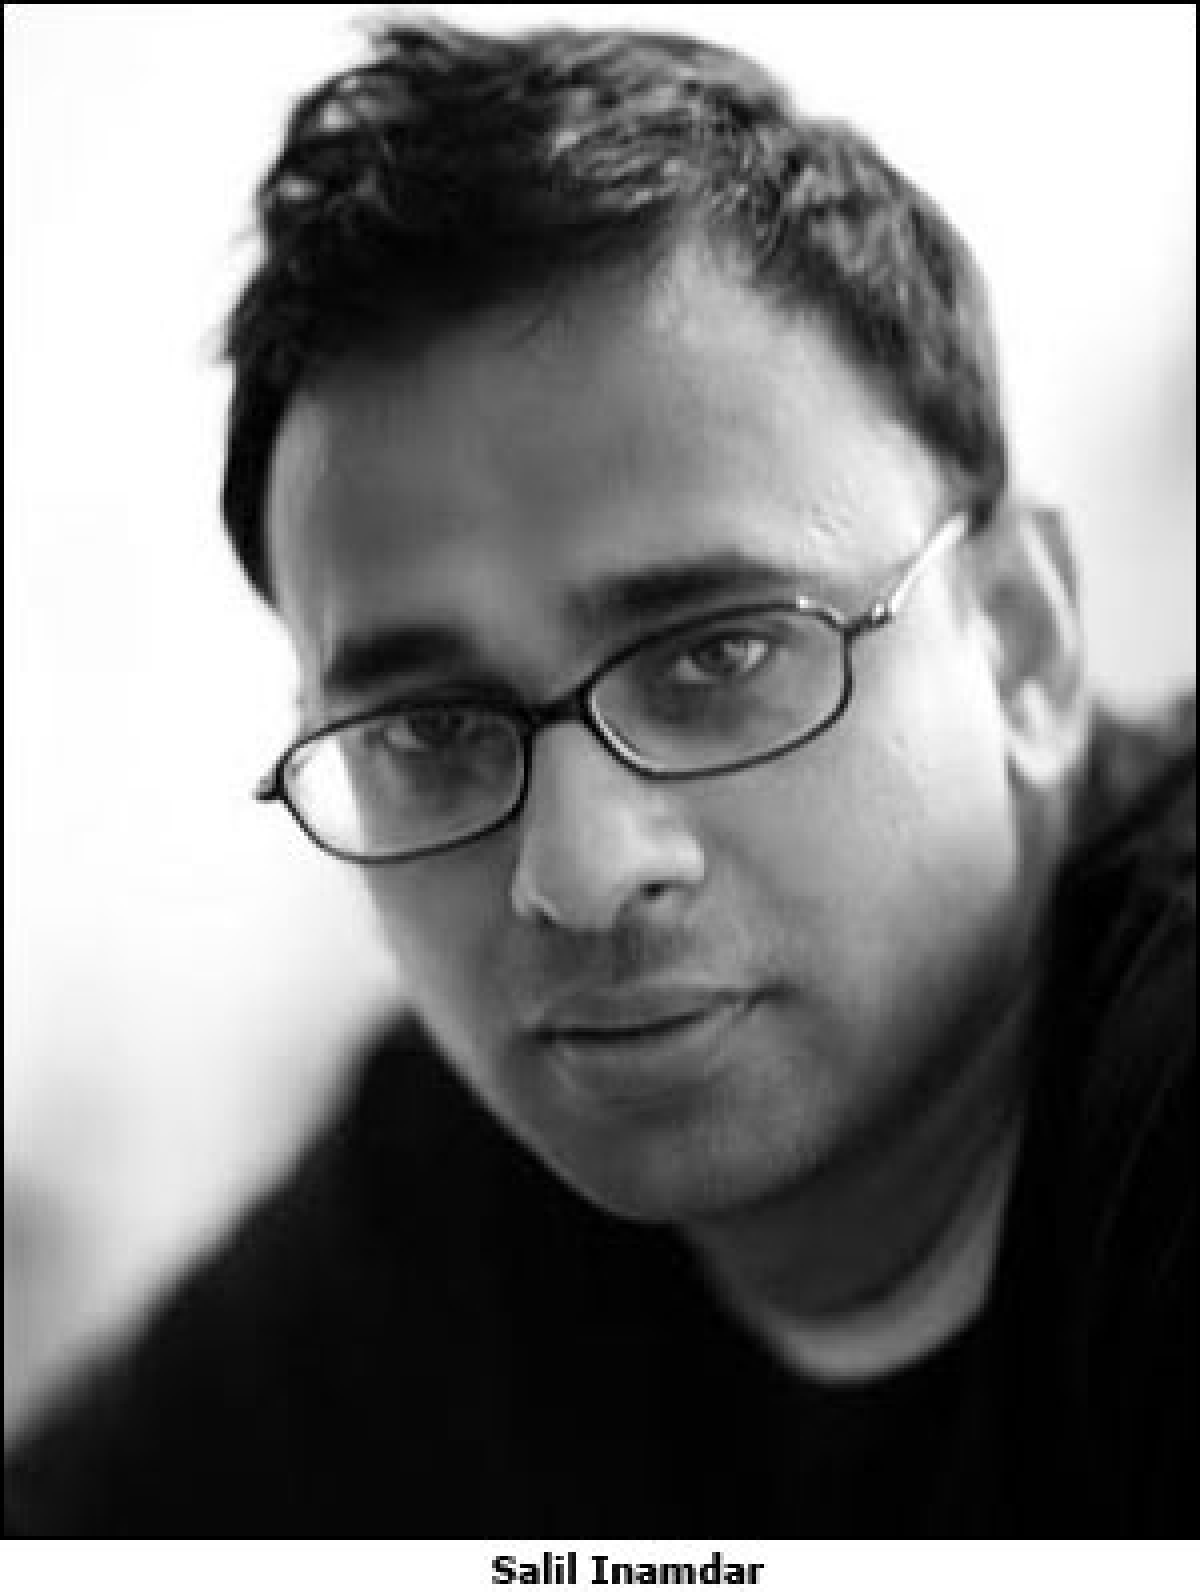 Grey appoints Salil Inamdar as national head, digital creative and content